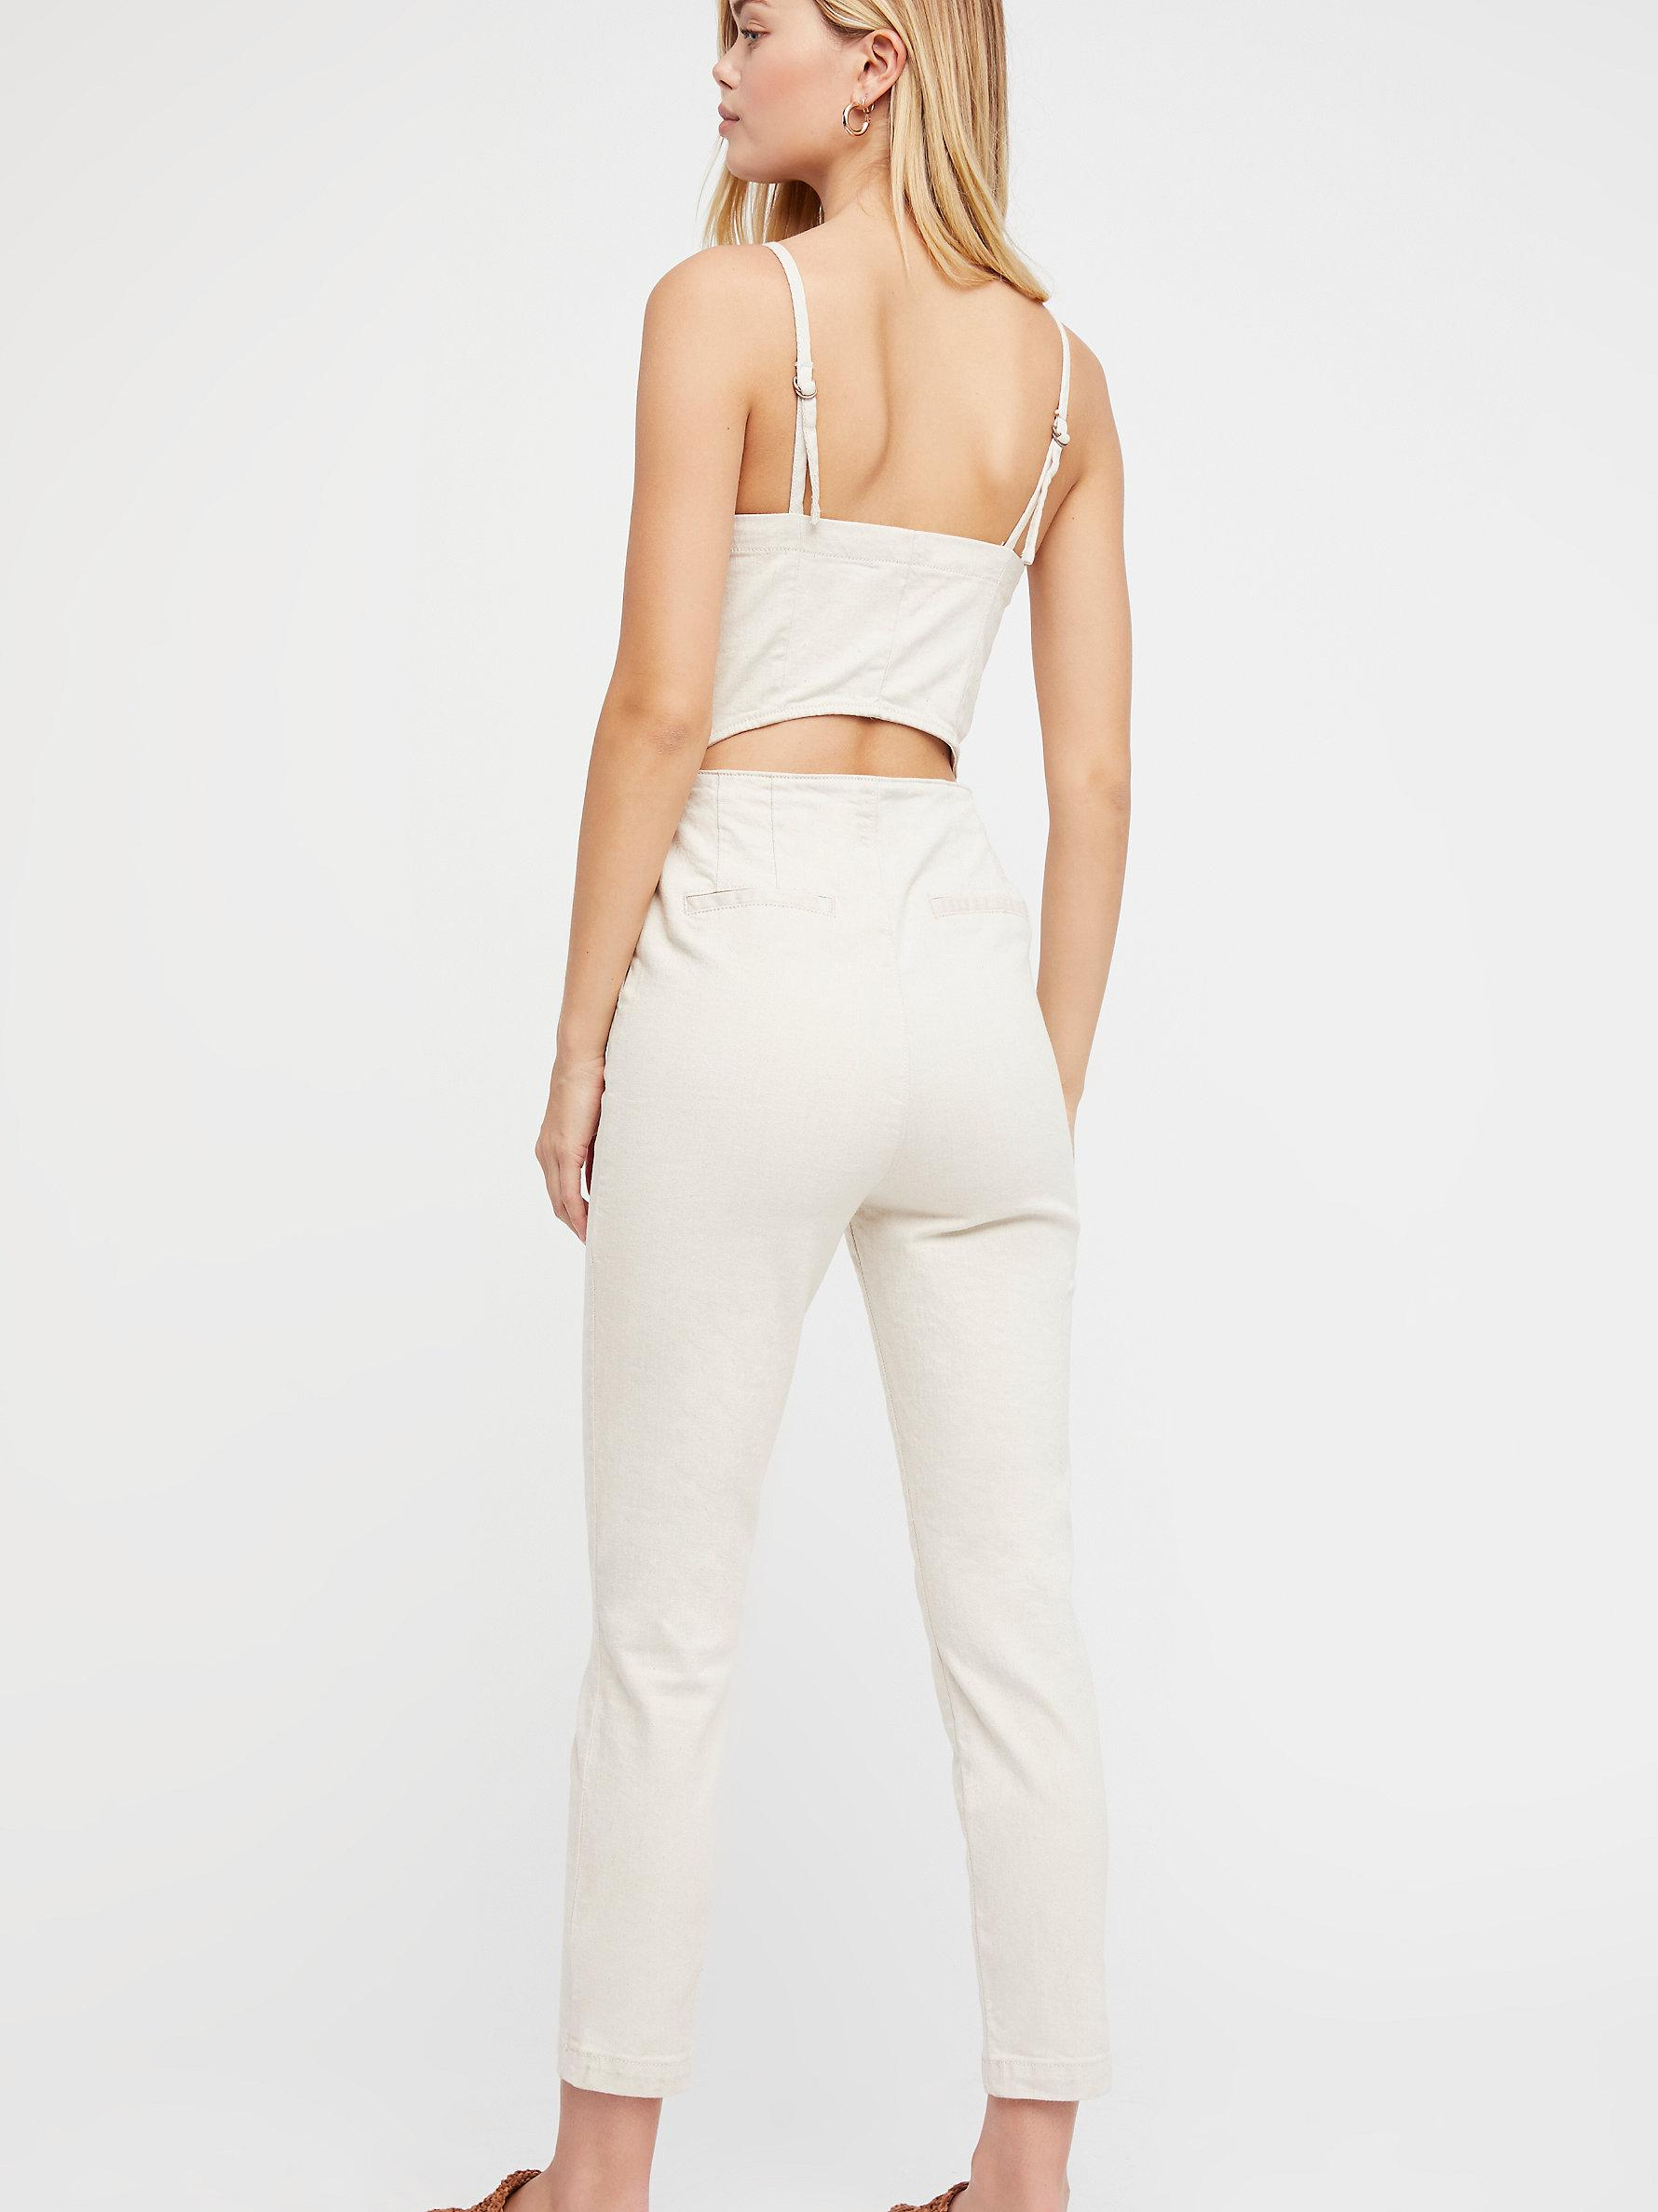 8fc95219647 Lyst - Free People Retro Denim One Piece in White